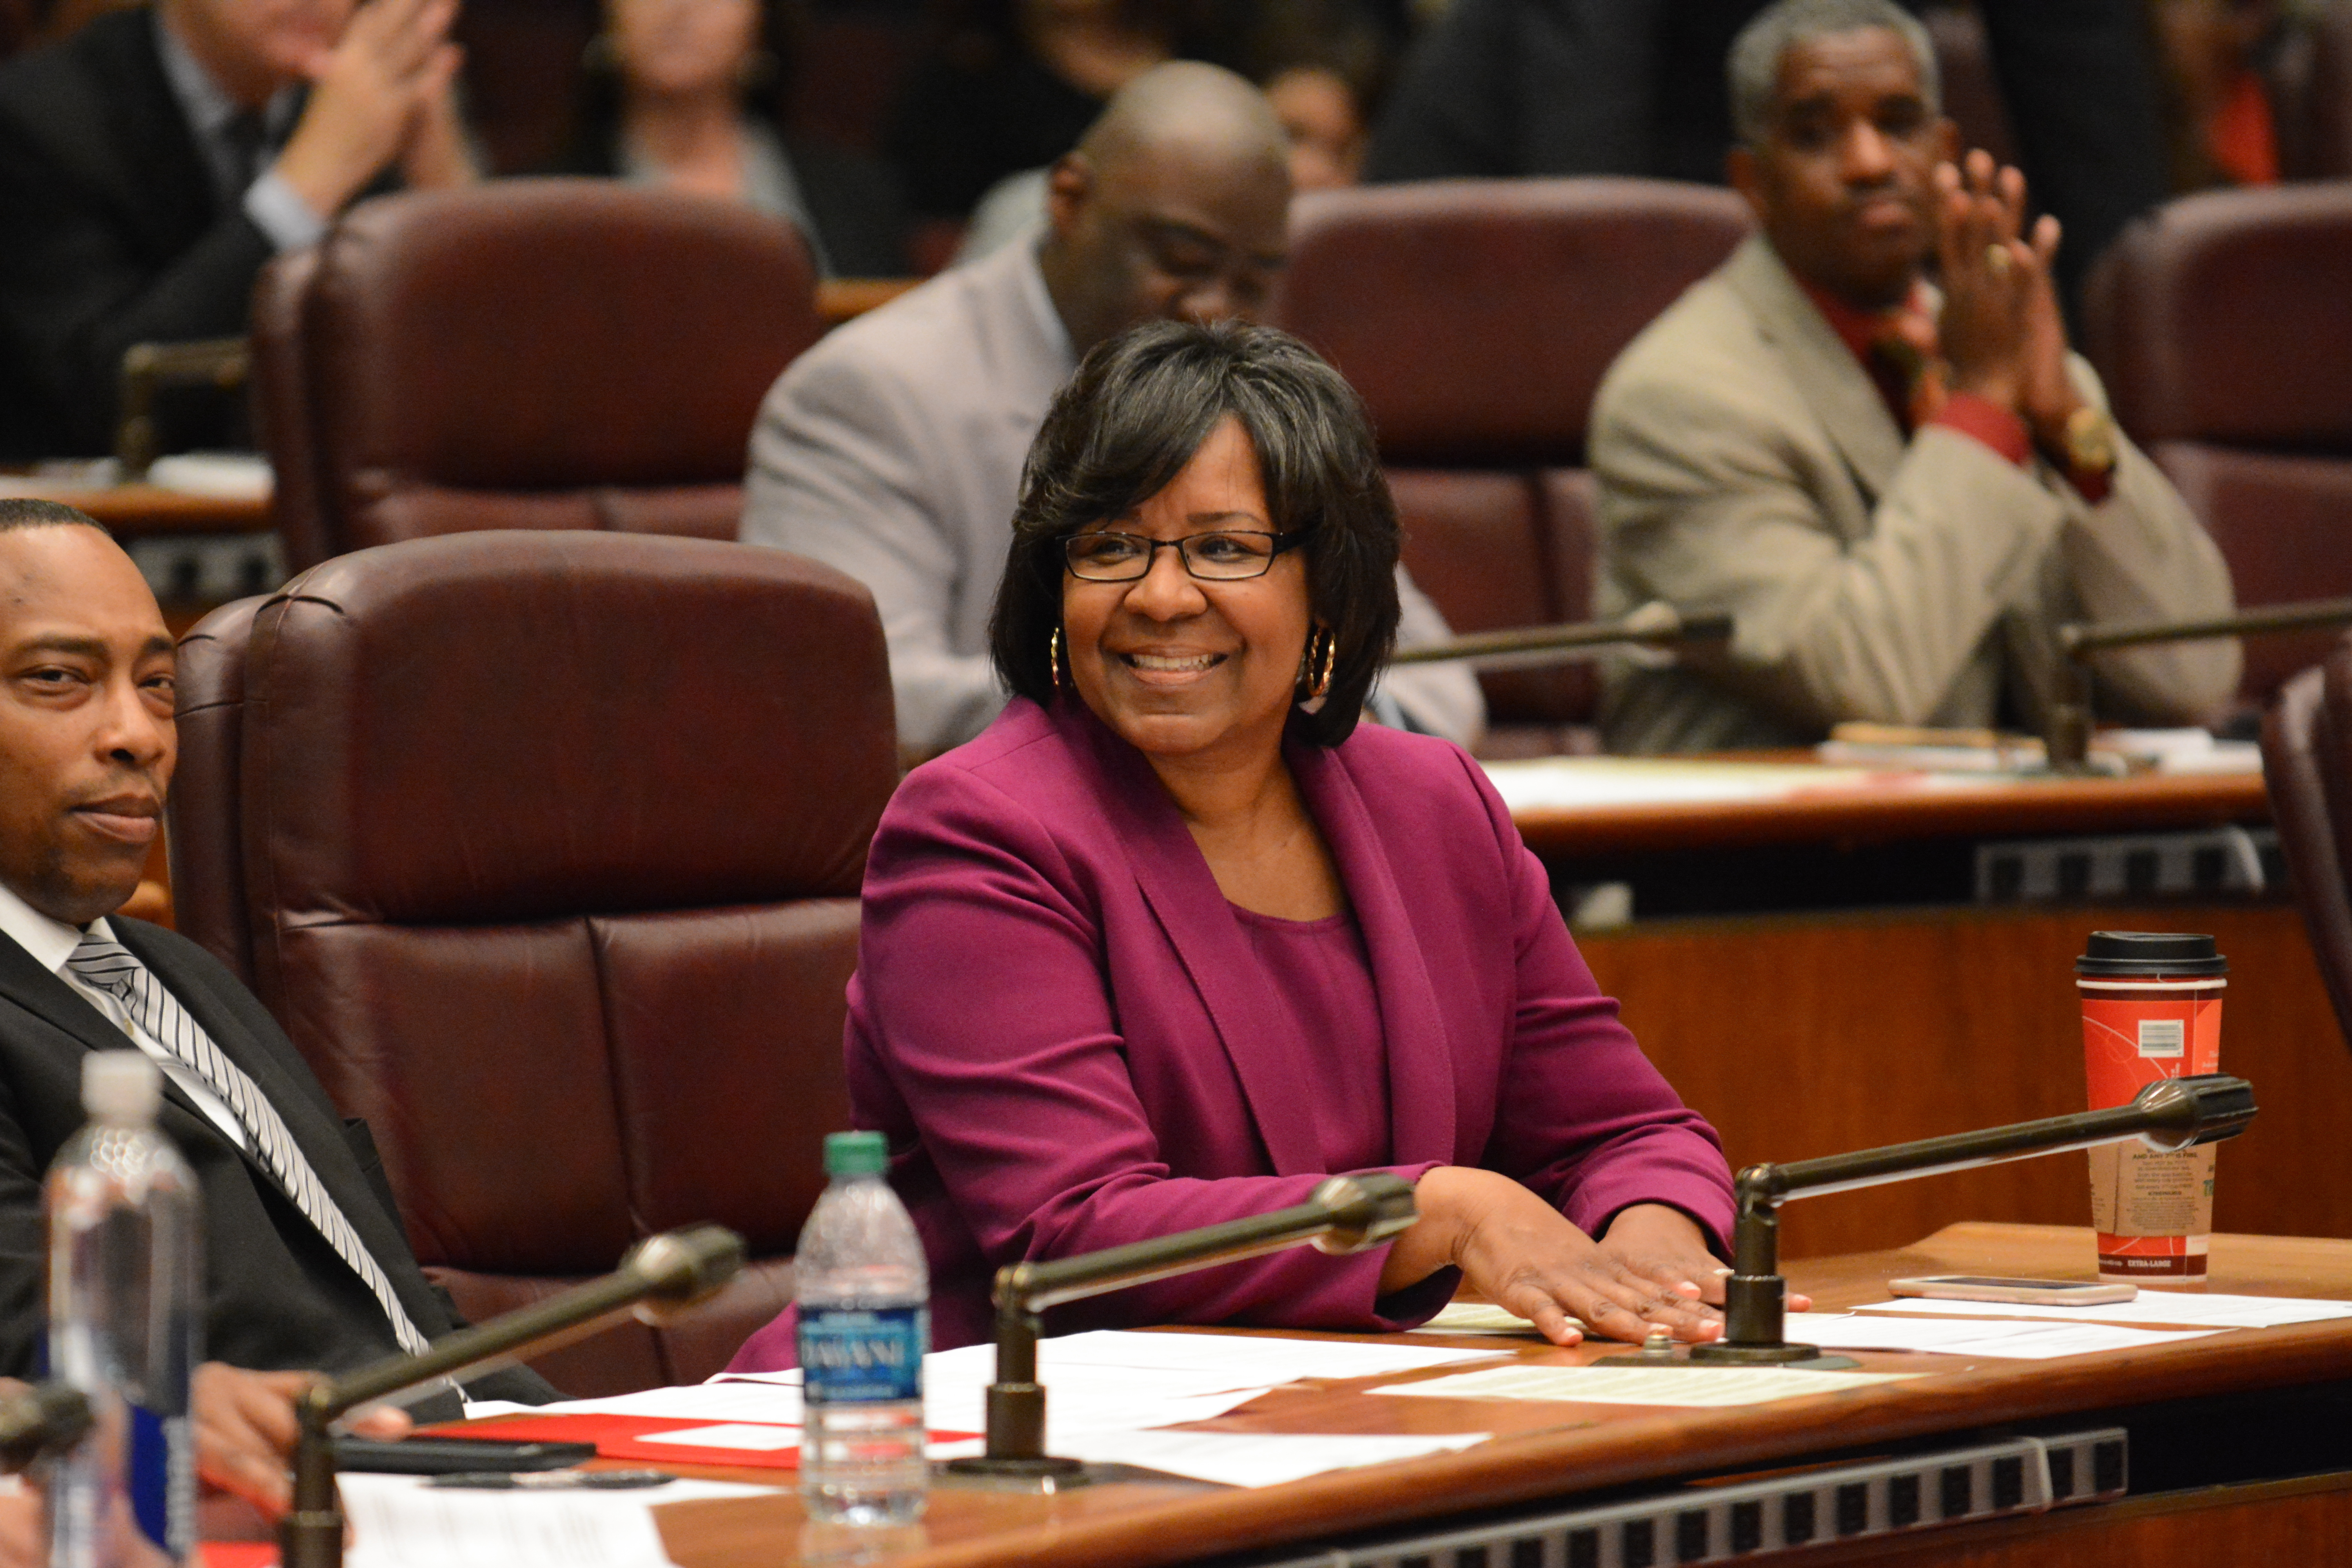 Ald. Michelle Harris during a Chicago City Council meeting in 2016.